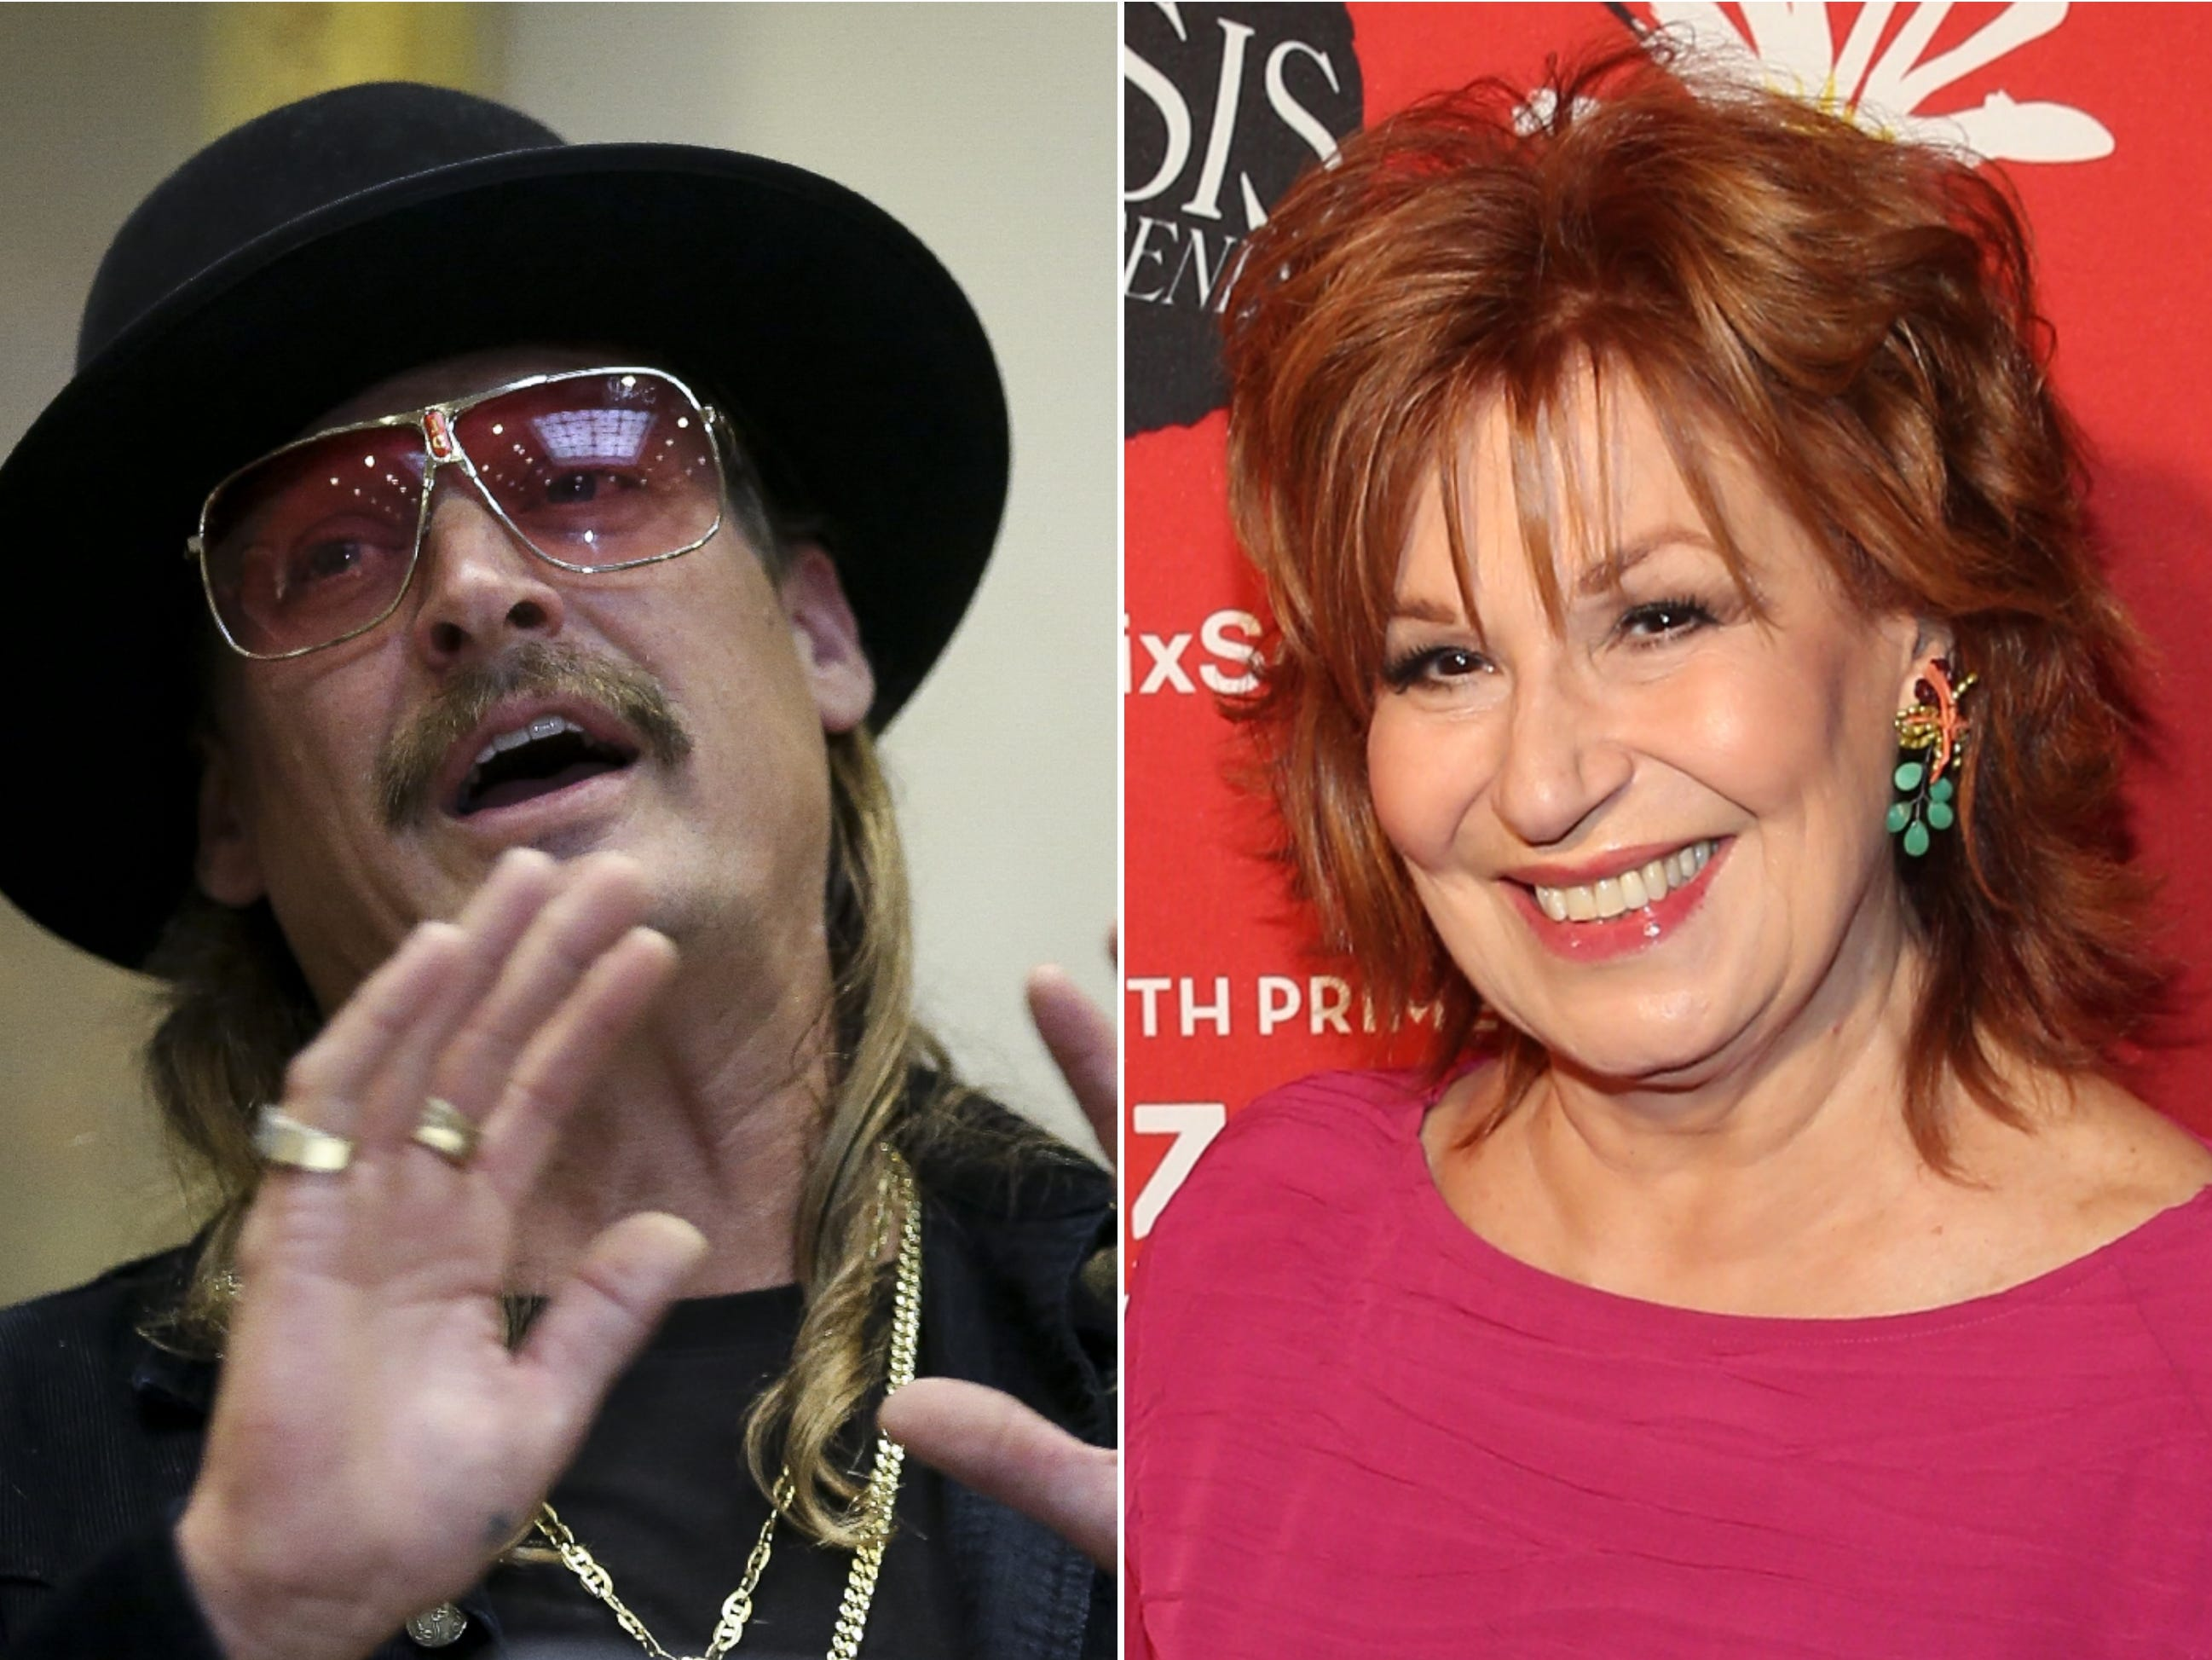 Kid Rock defends jab at Joy Behar: 'Mess with the bull, get the horns'